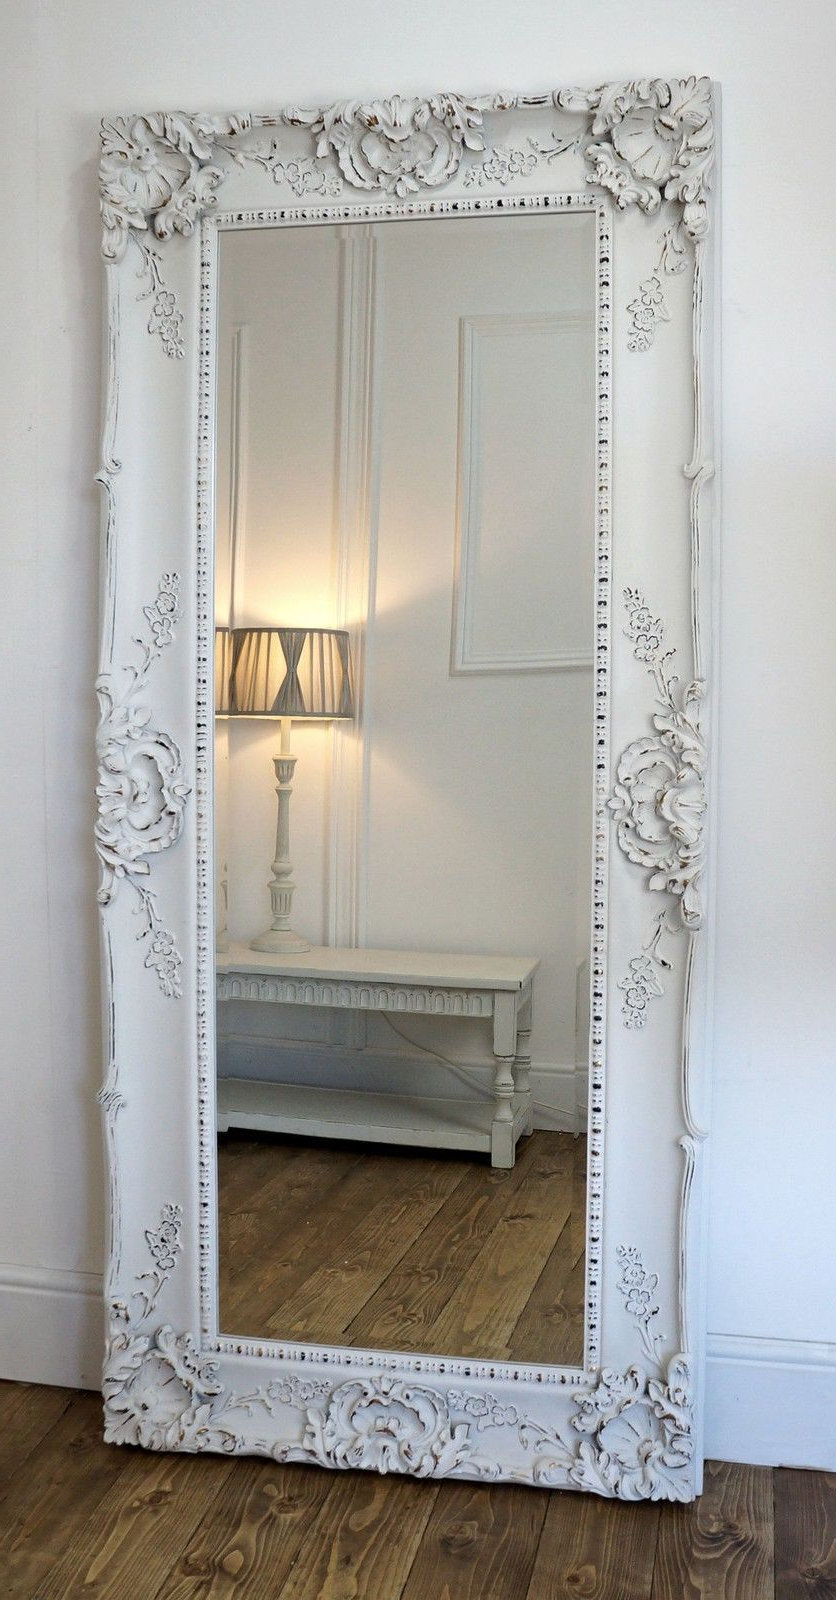 "Grasmere White Ornate Rectangle Antique Wall Mirror 31"" X 69"" X Regarding Famous X Large Wall Mirrors (View 7 of 20)"